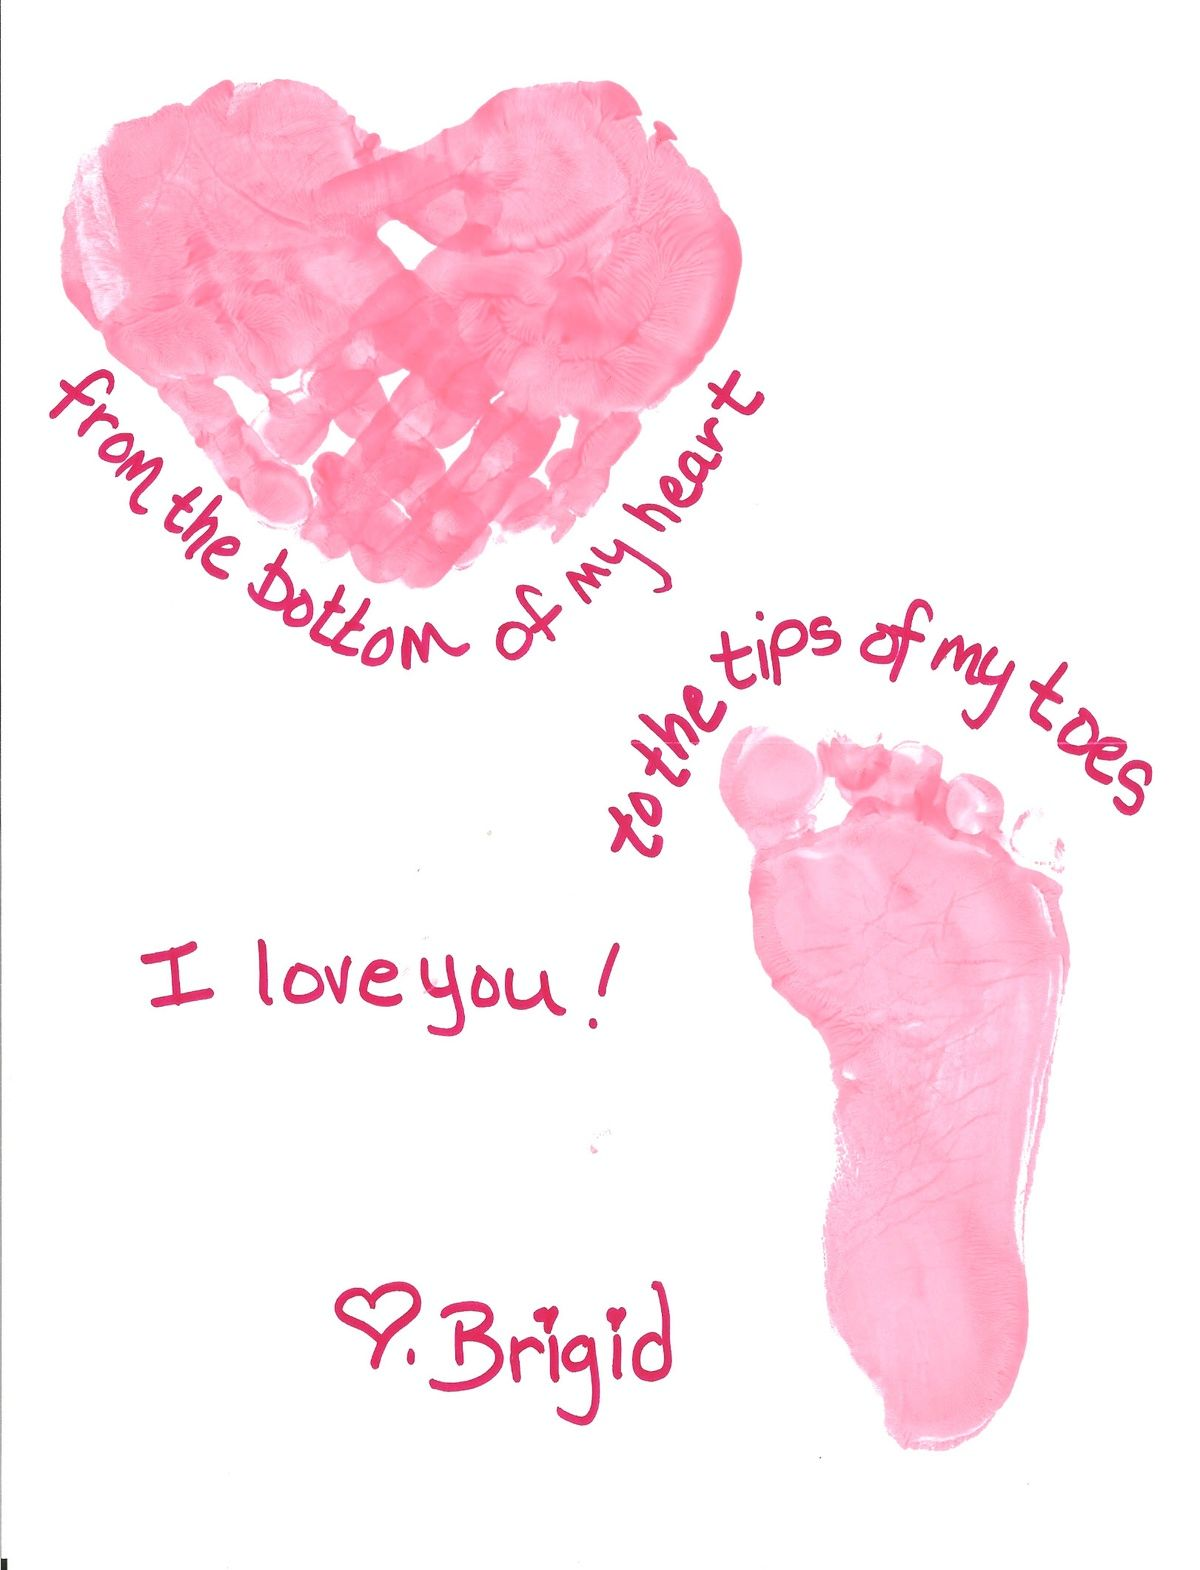 Pin by Aud on Bits &bobs | Valentine crafts for kids ...